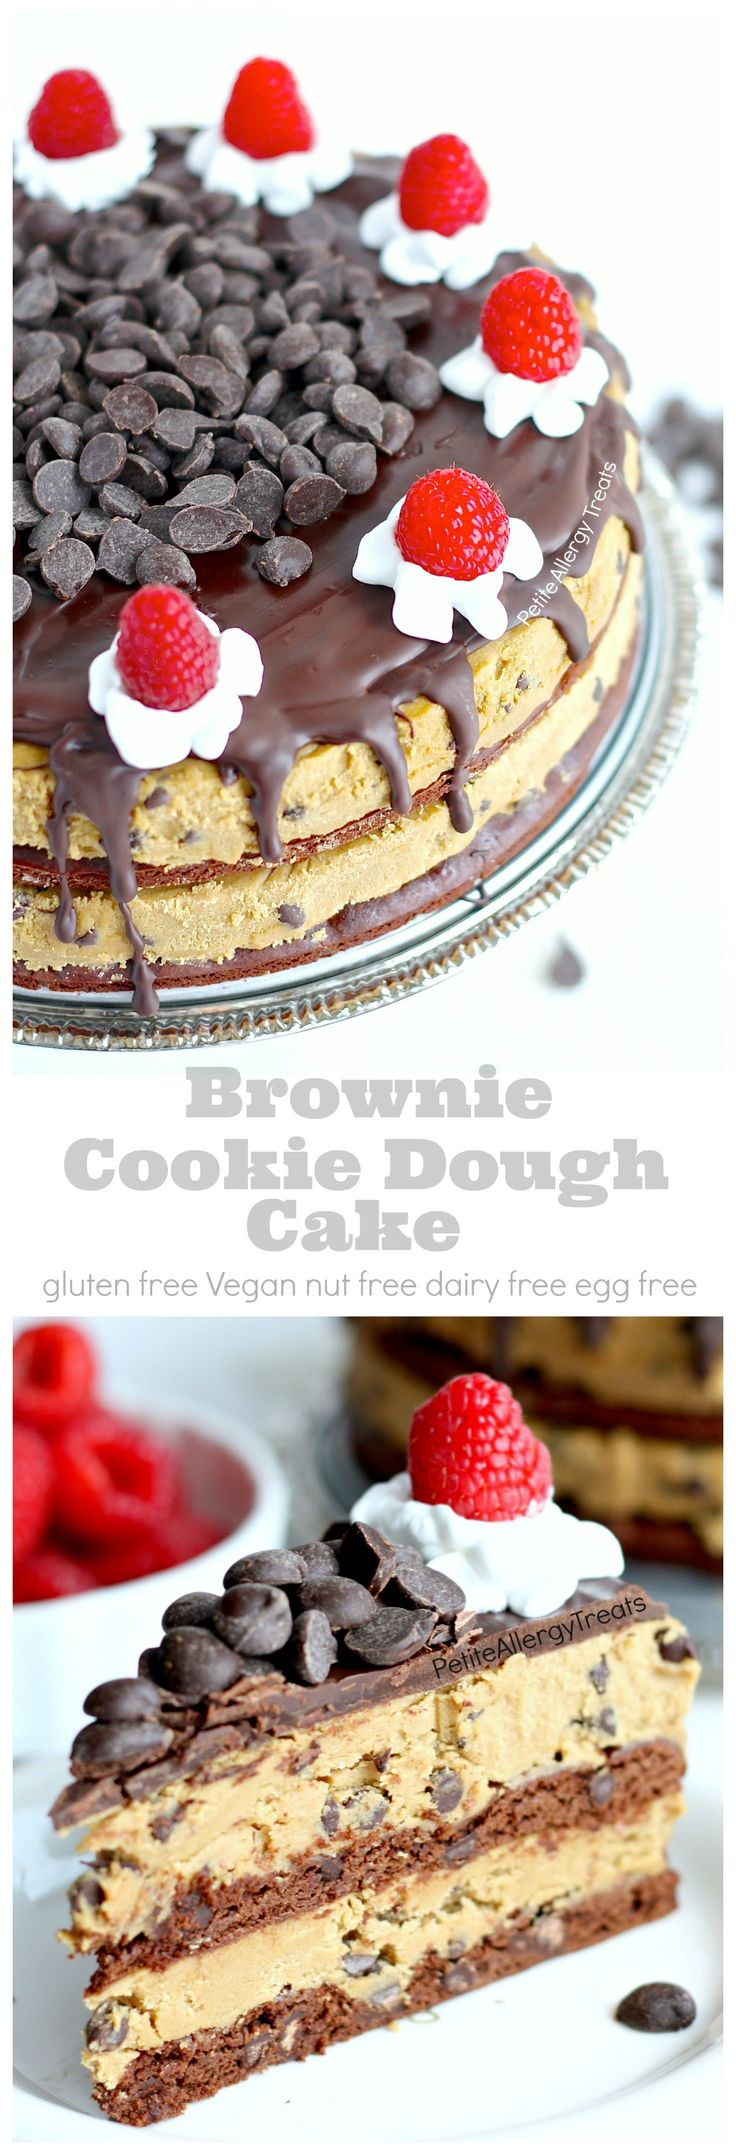 Cookie Dough Brownie Cake (Gluten Free Dairy Free) Recipe- Grab a slice of decadent brownie cookie dough cake! This cake is food allergy friendly too- egg free dairy free nut free soy free and Vegan: